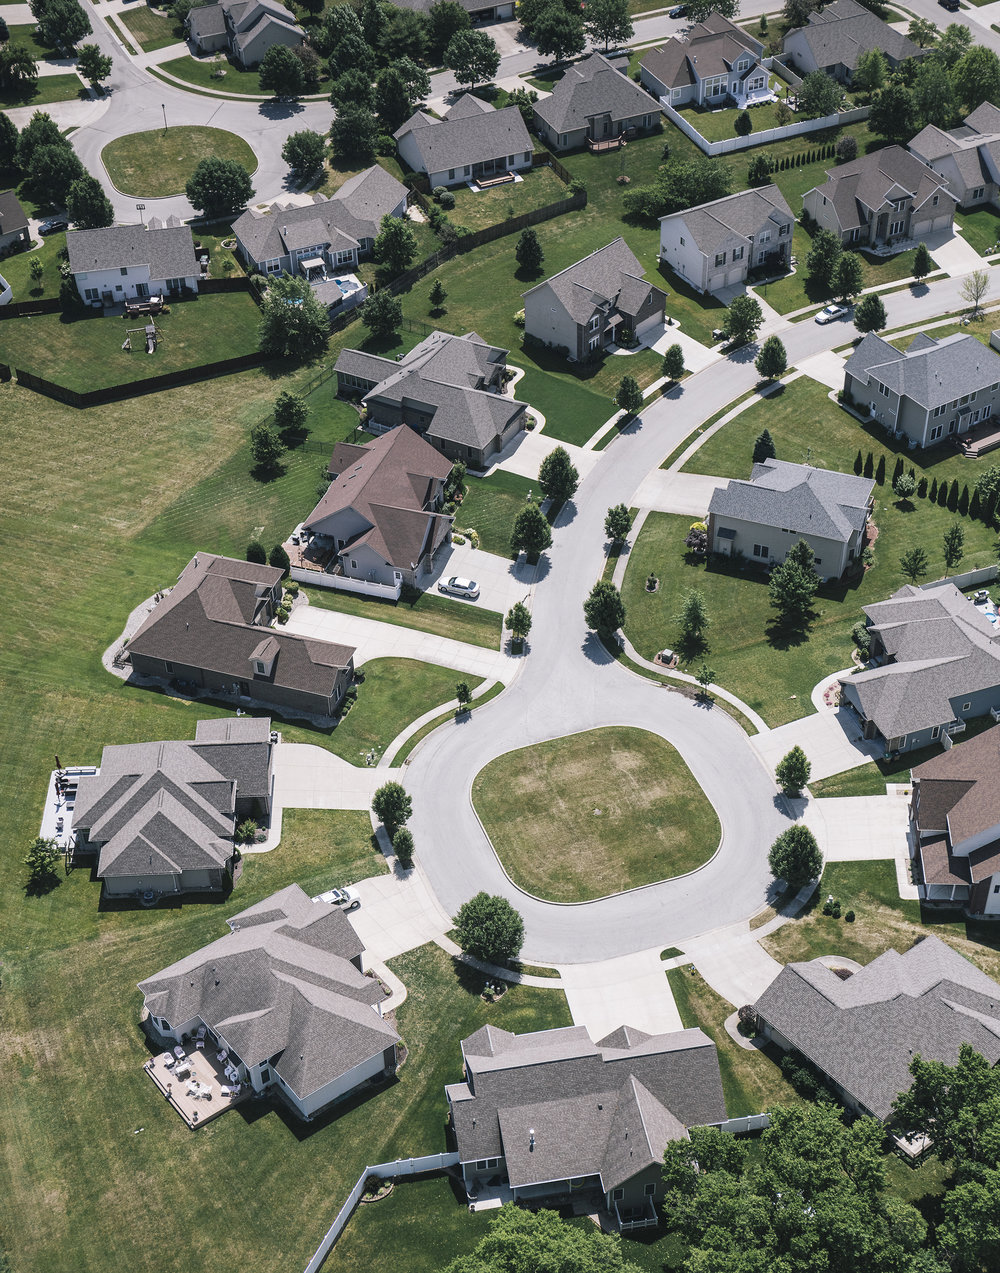 Aerial View of suburban development